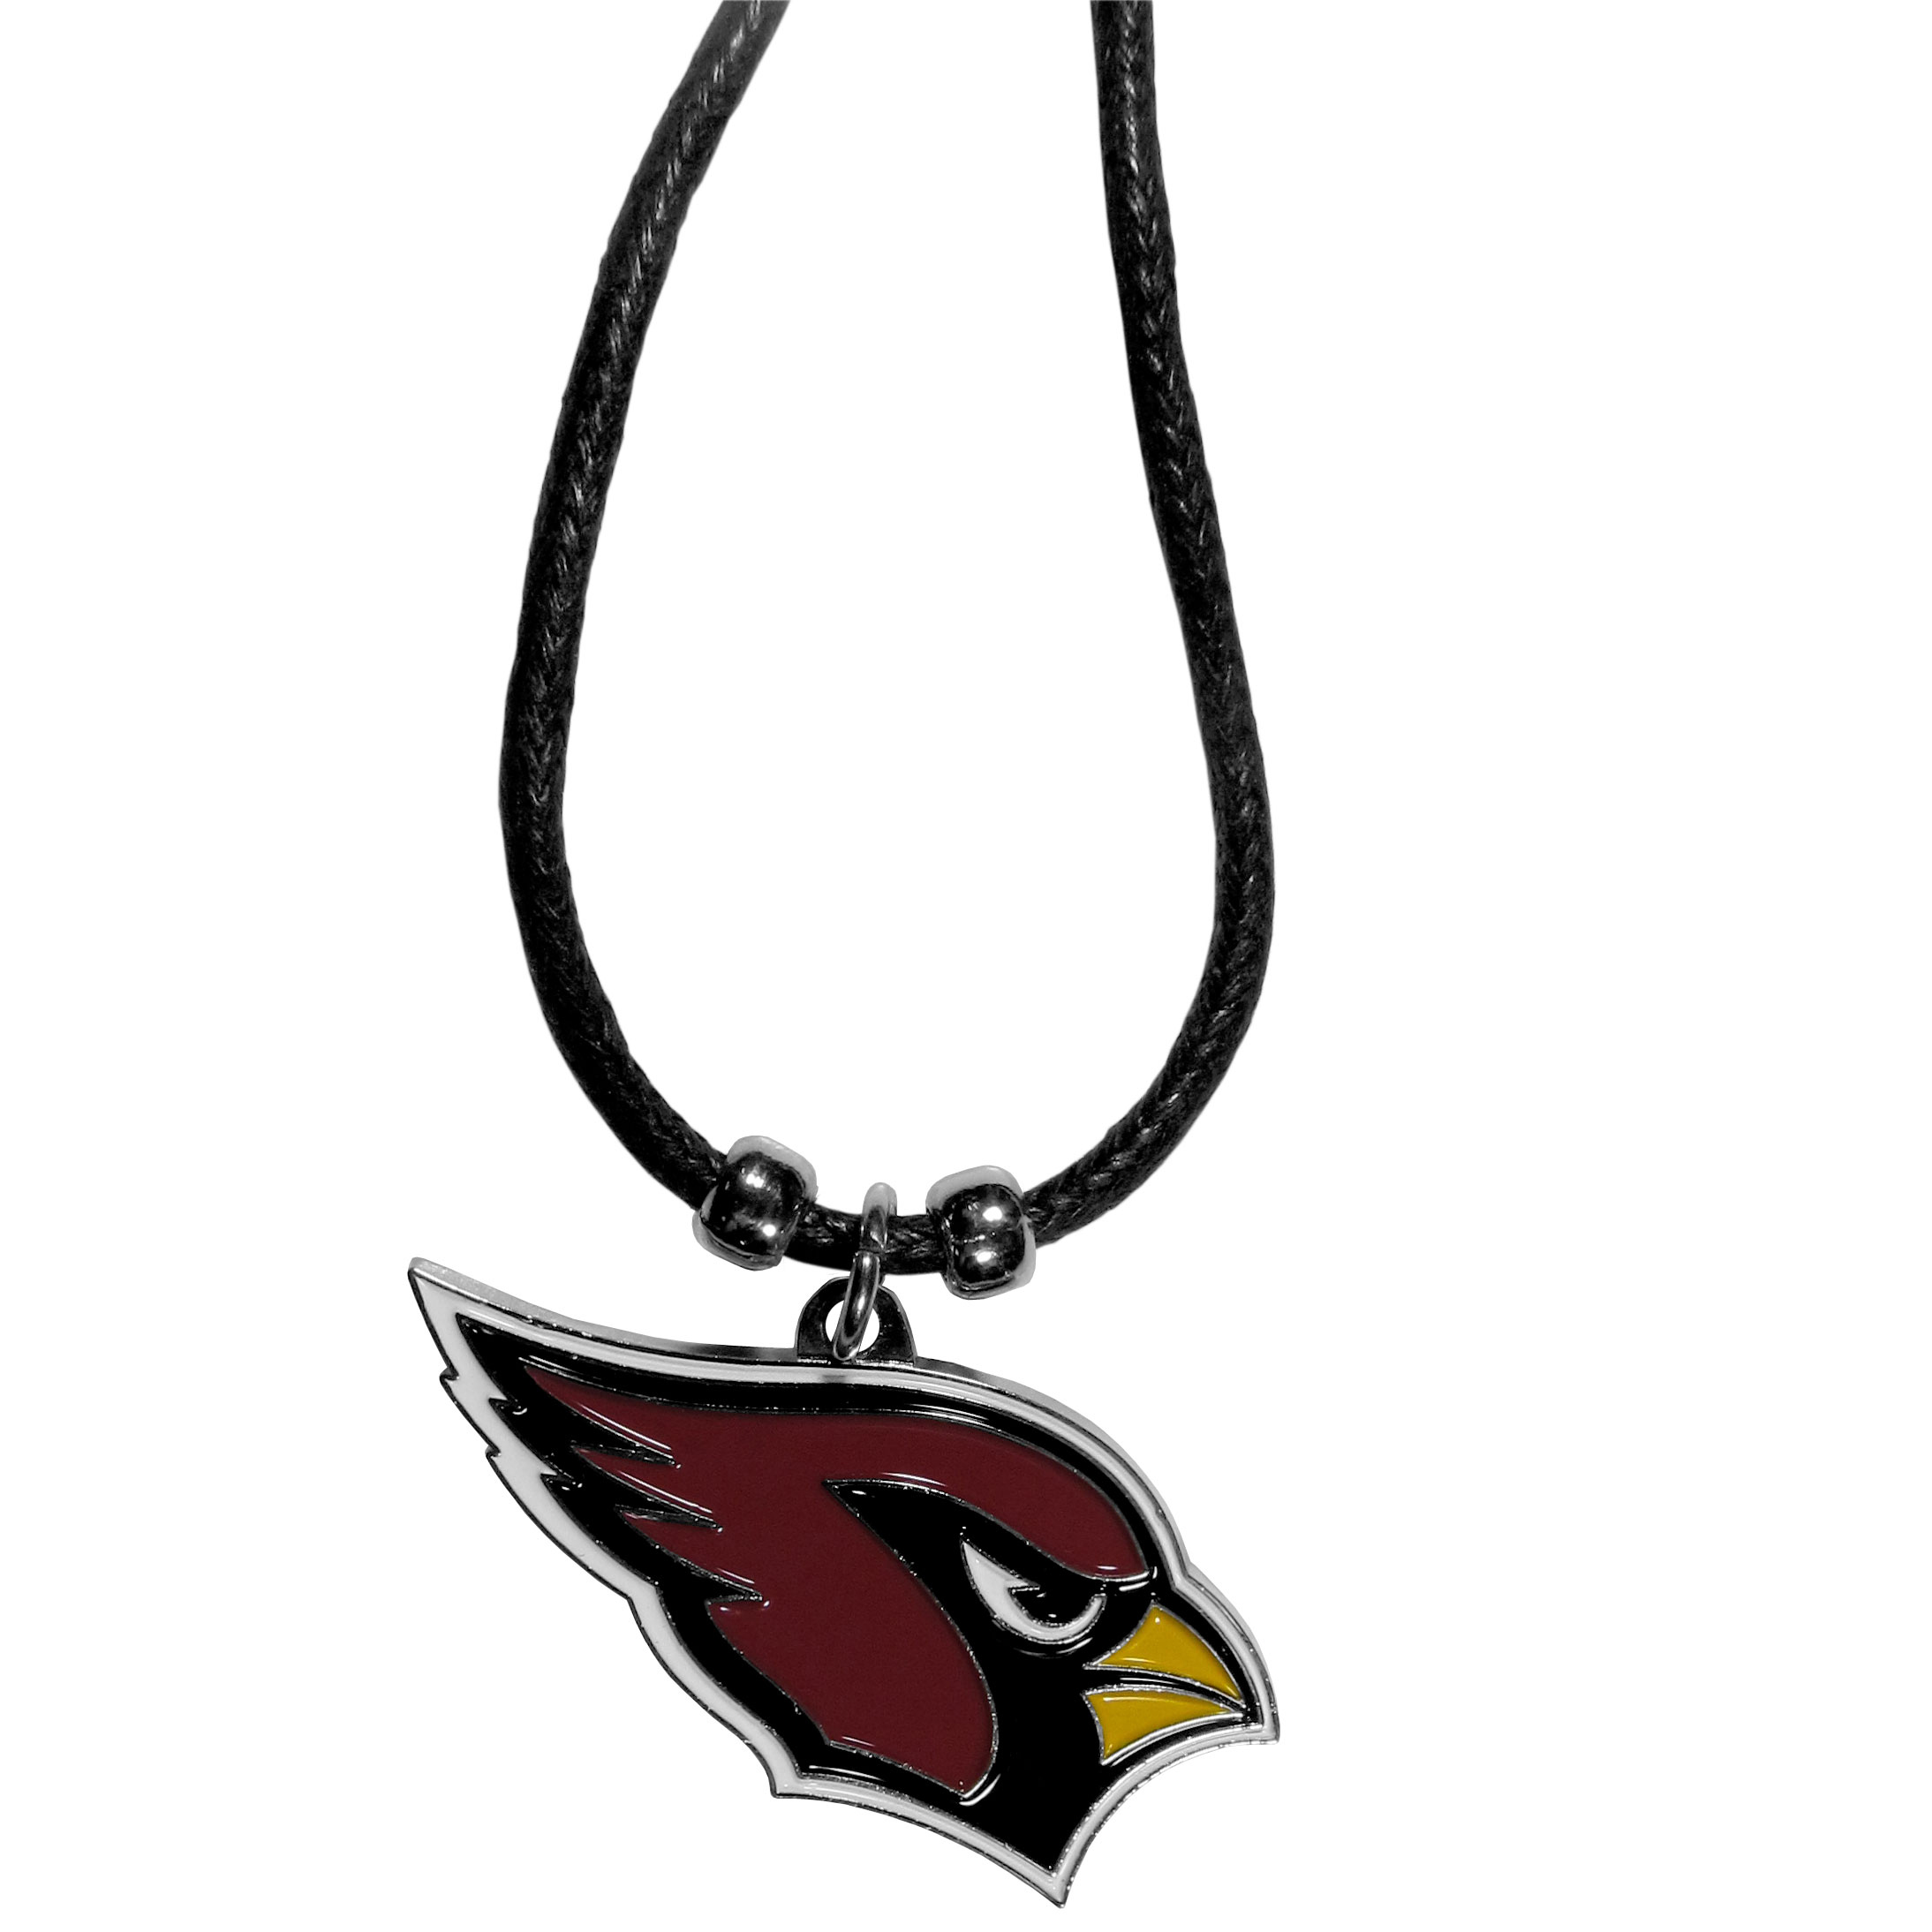 Arizona Cardinals Cord Necklace - This classic style cotton cord necklace features an extra large Arizona Cardinals pendant on a 21 inch cord.